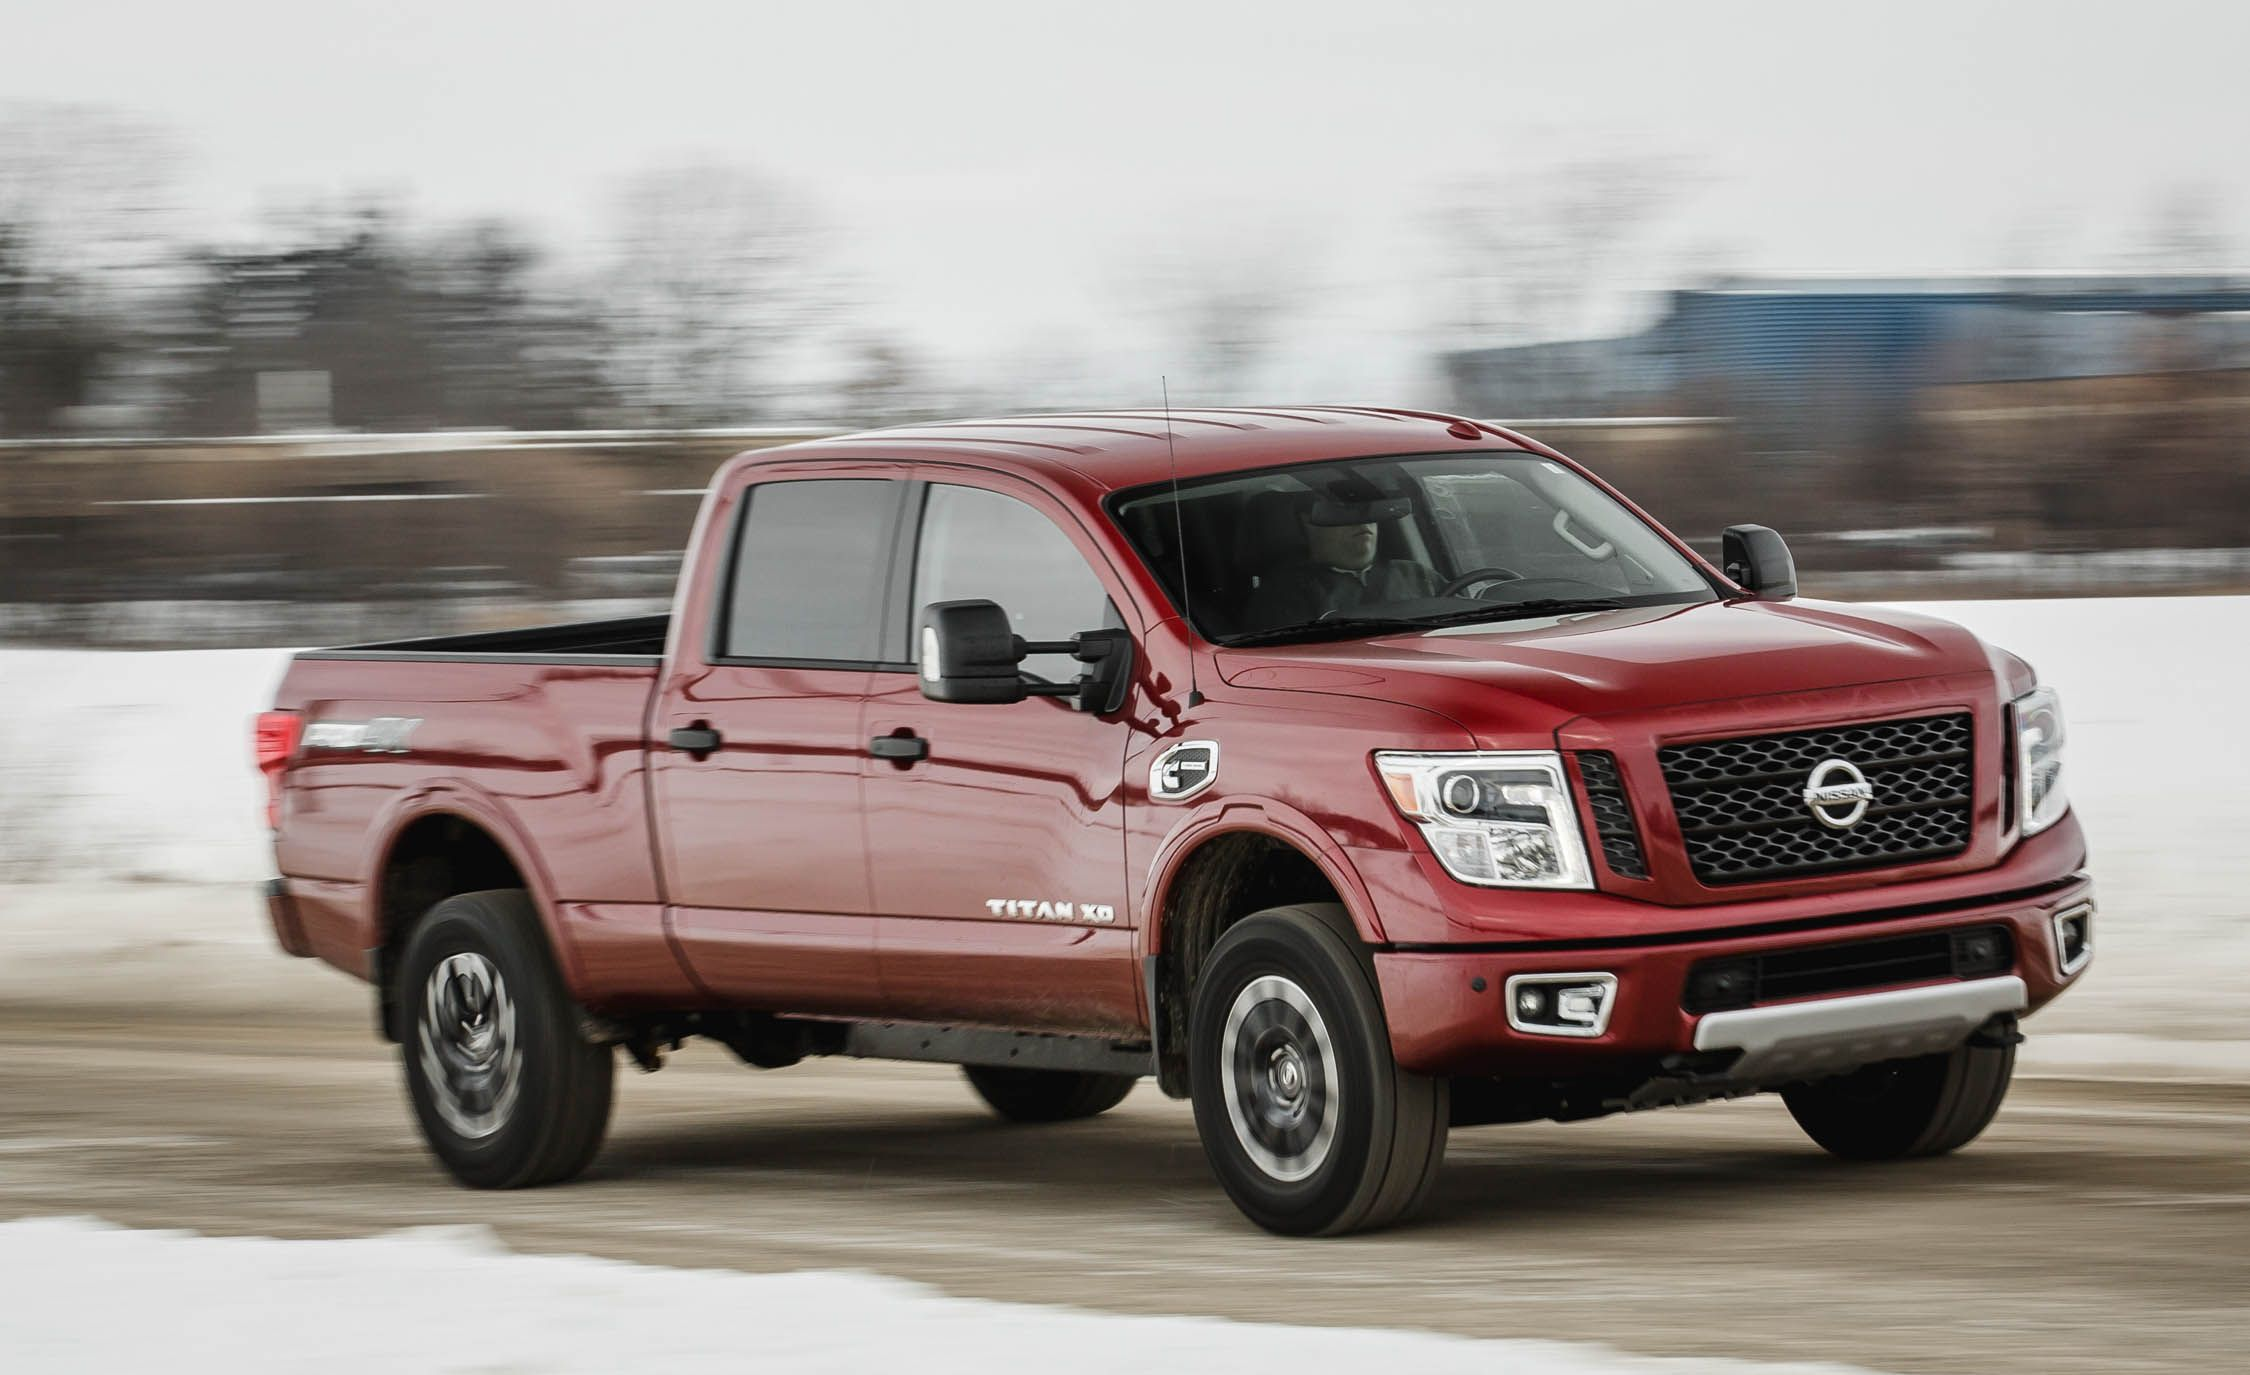 2018 nissan titan xd nissanconnect infotainment review car and driver. Black Bedroom Furniture Sets. Home Design Ideas